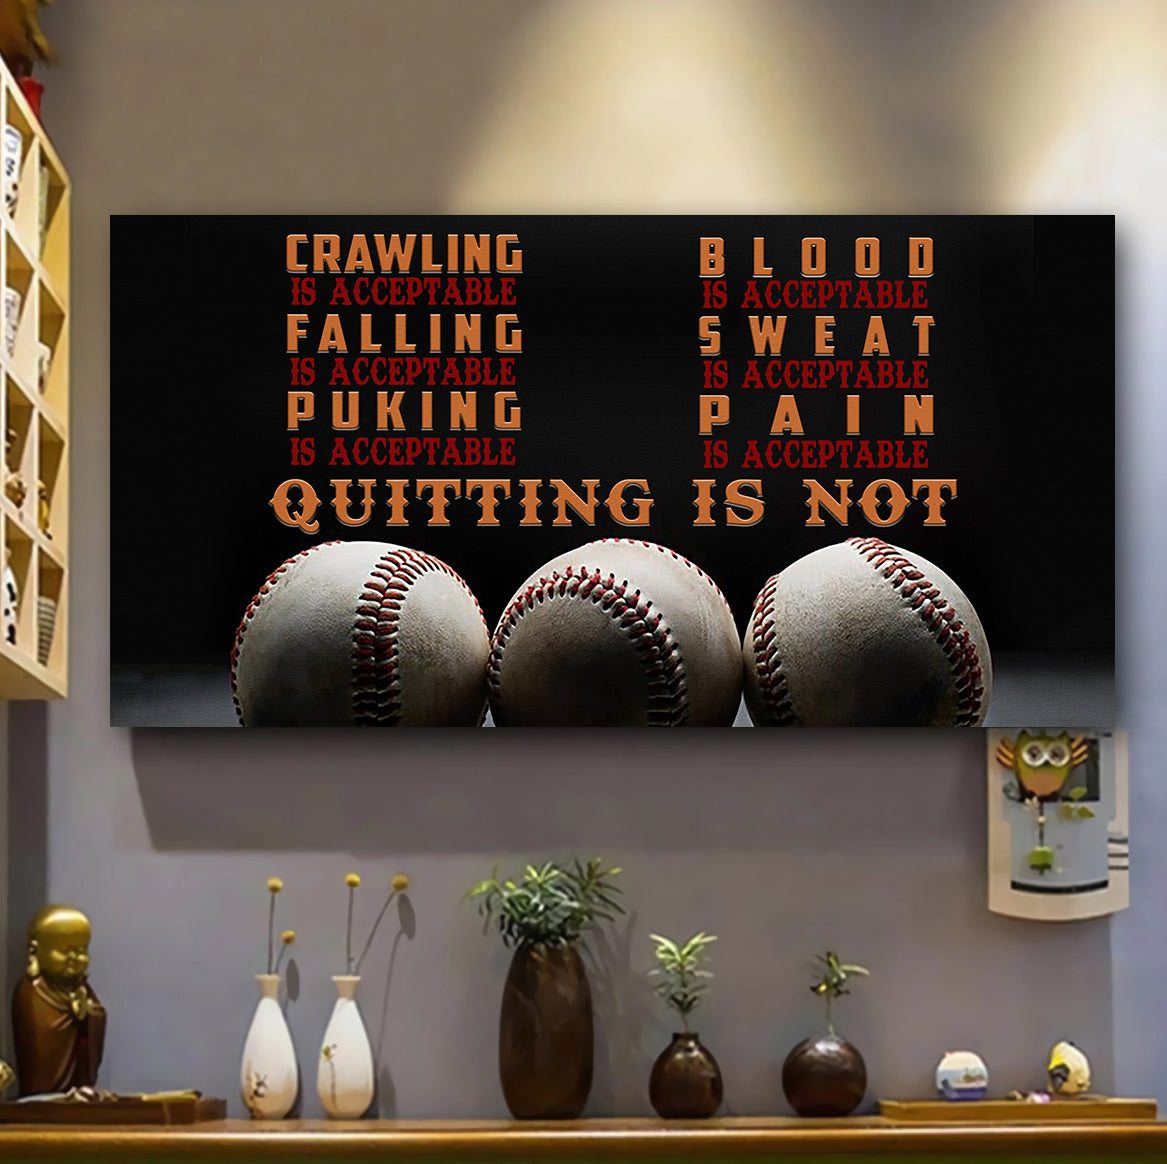 (LP328) Customizable Baseball Poster, Canvas -  quitting is not  - FREE SHIPPING ON ORDERS OVER $75